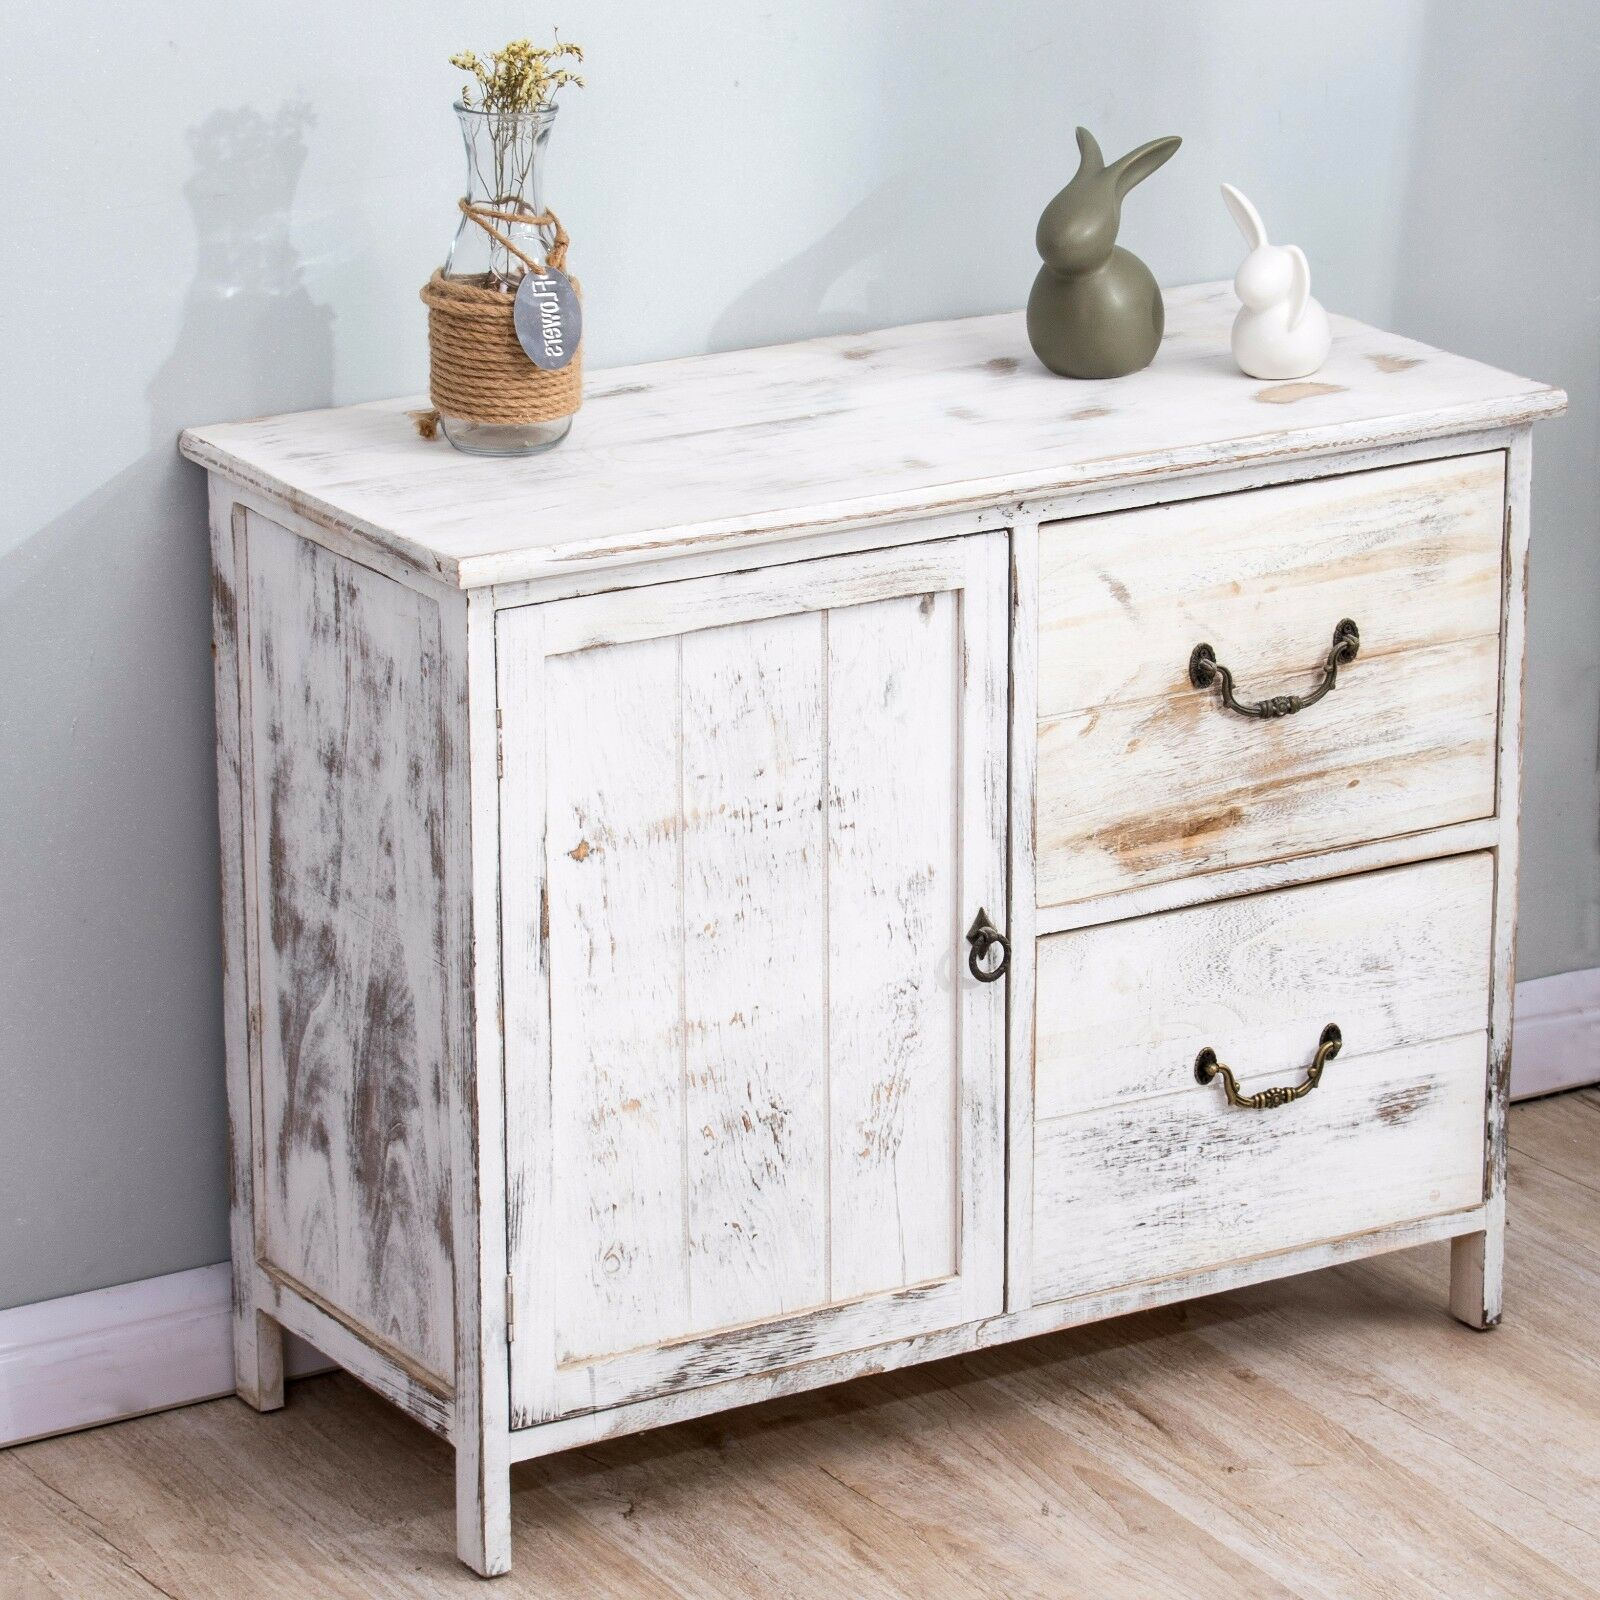 ctf distressed white paulownia wood shabby chic sideboard drawer chest picclick uk. Black Bedroom Furniture Sets. Home Design Ideas